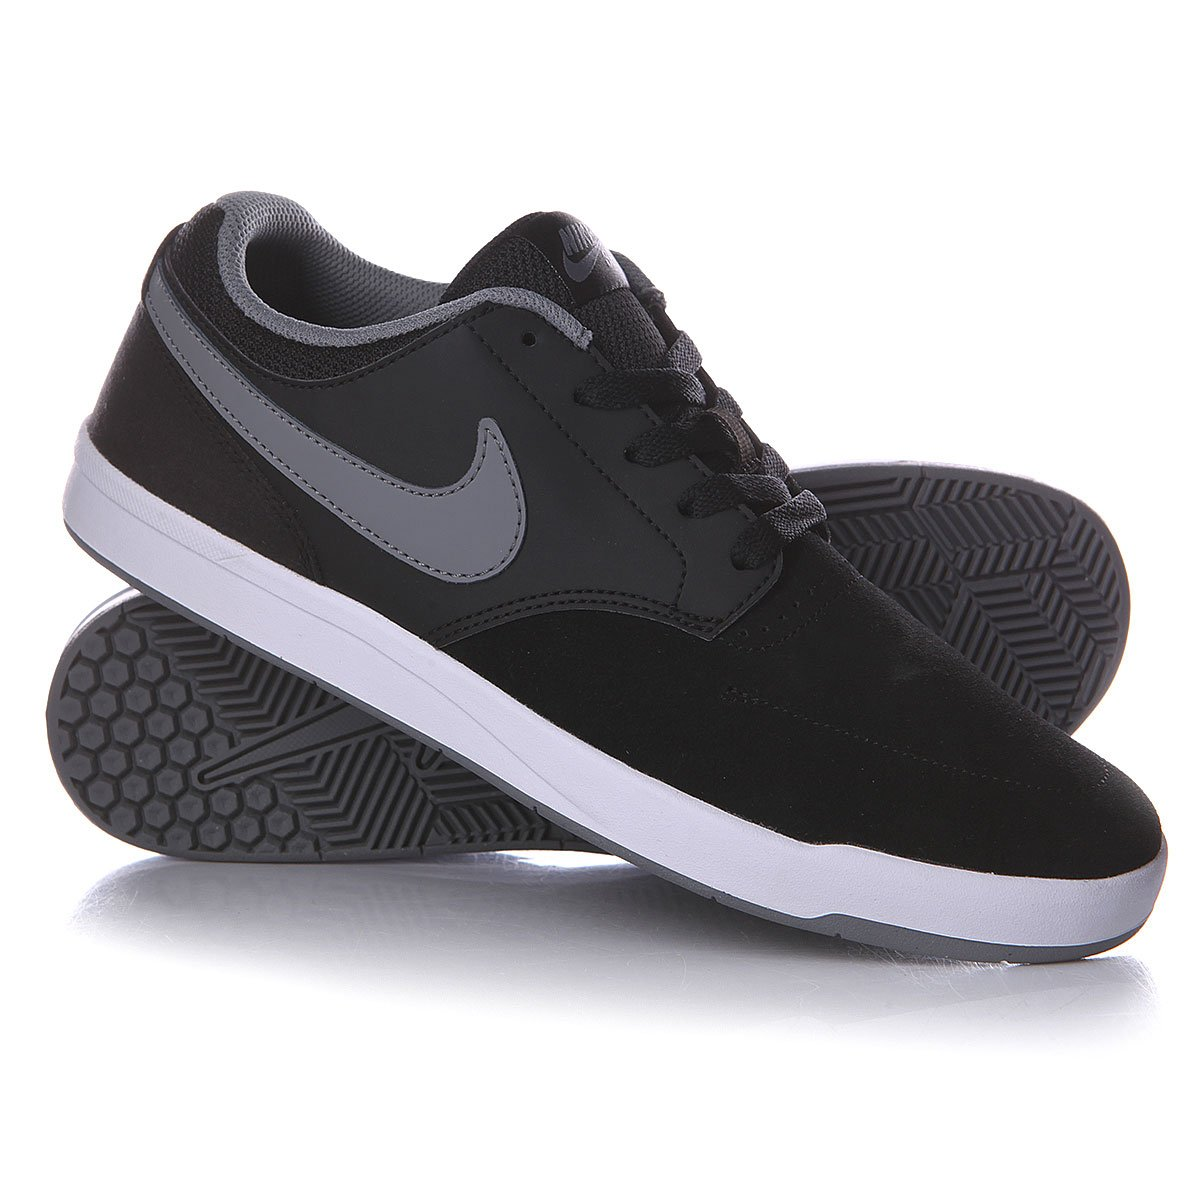 e34360b5 Купить кеды Nike Sb Fokus Black/Cool Grey/White (749477-001) в ...